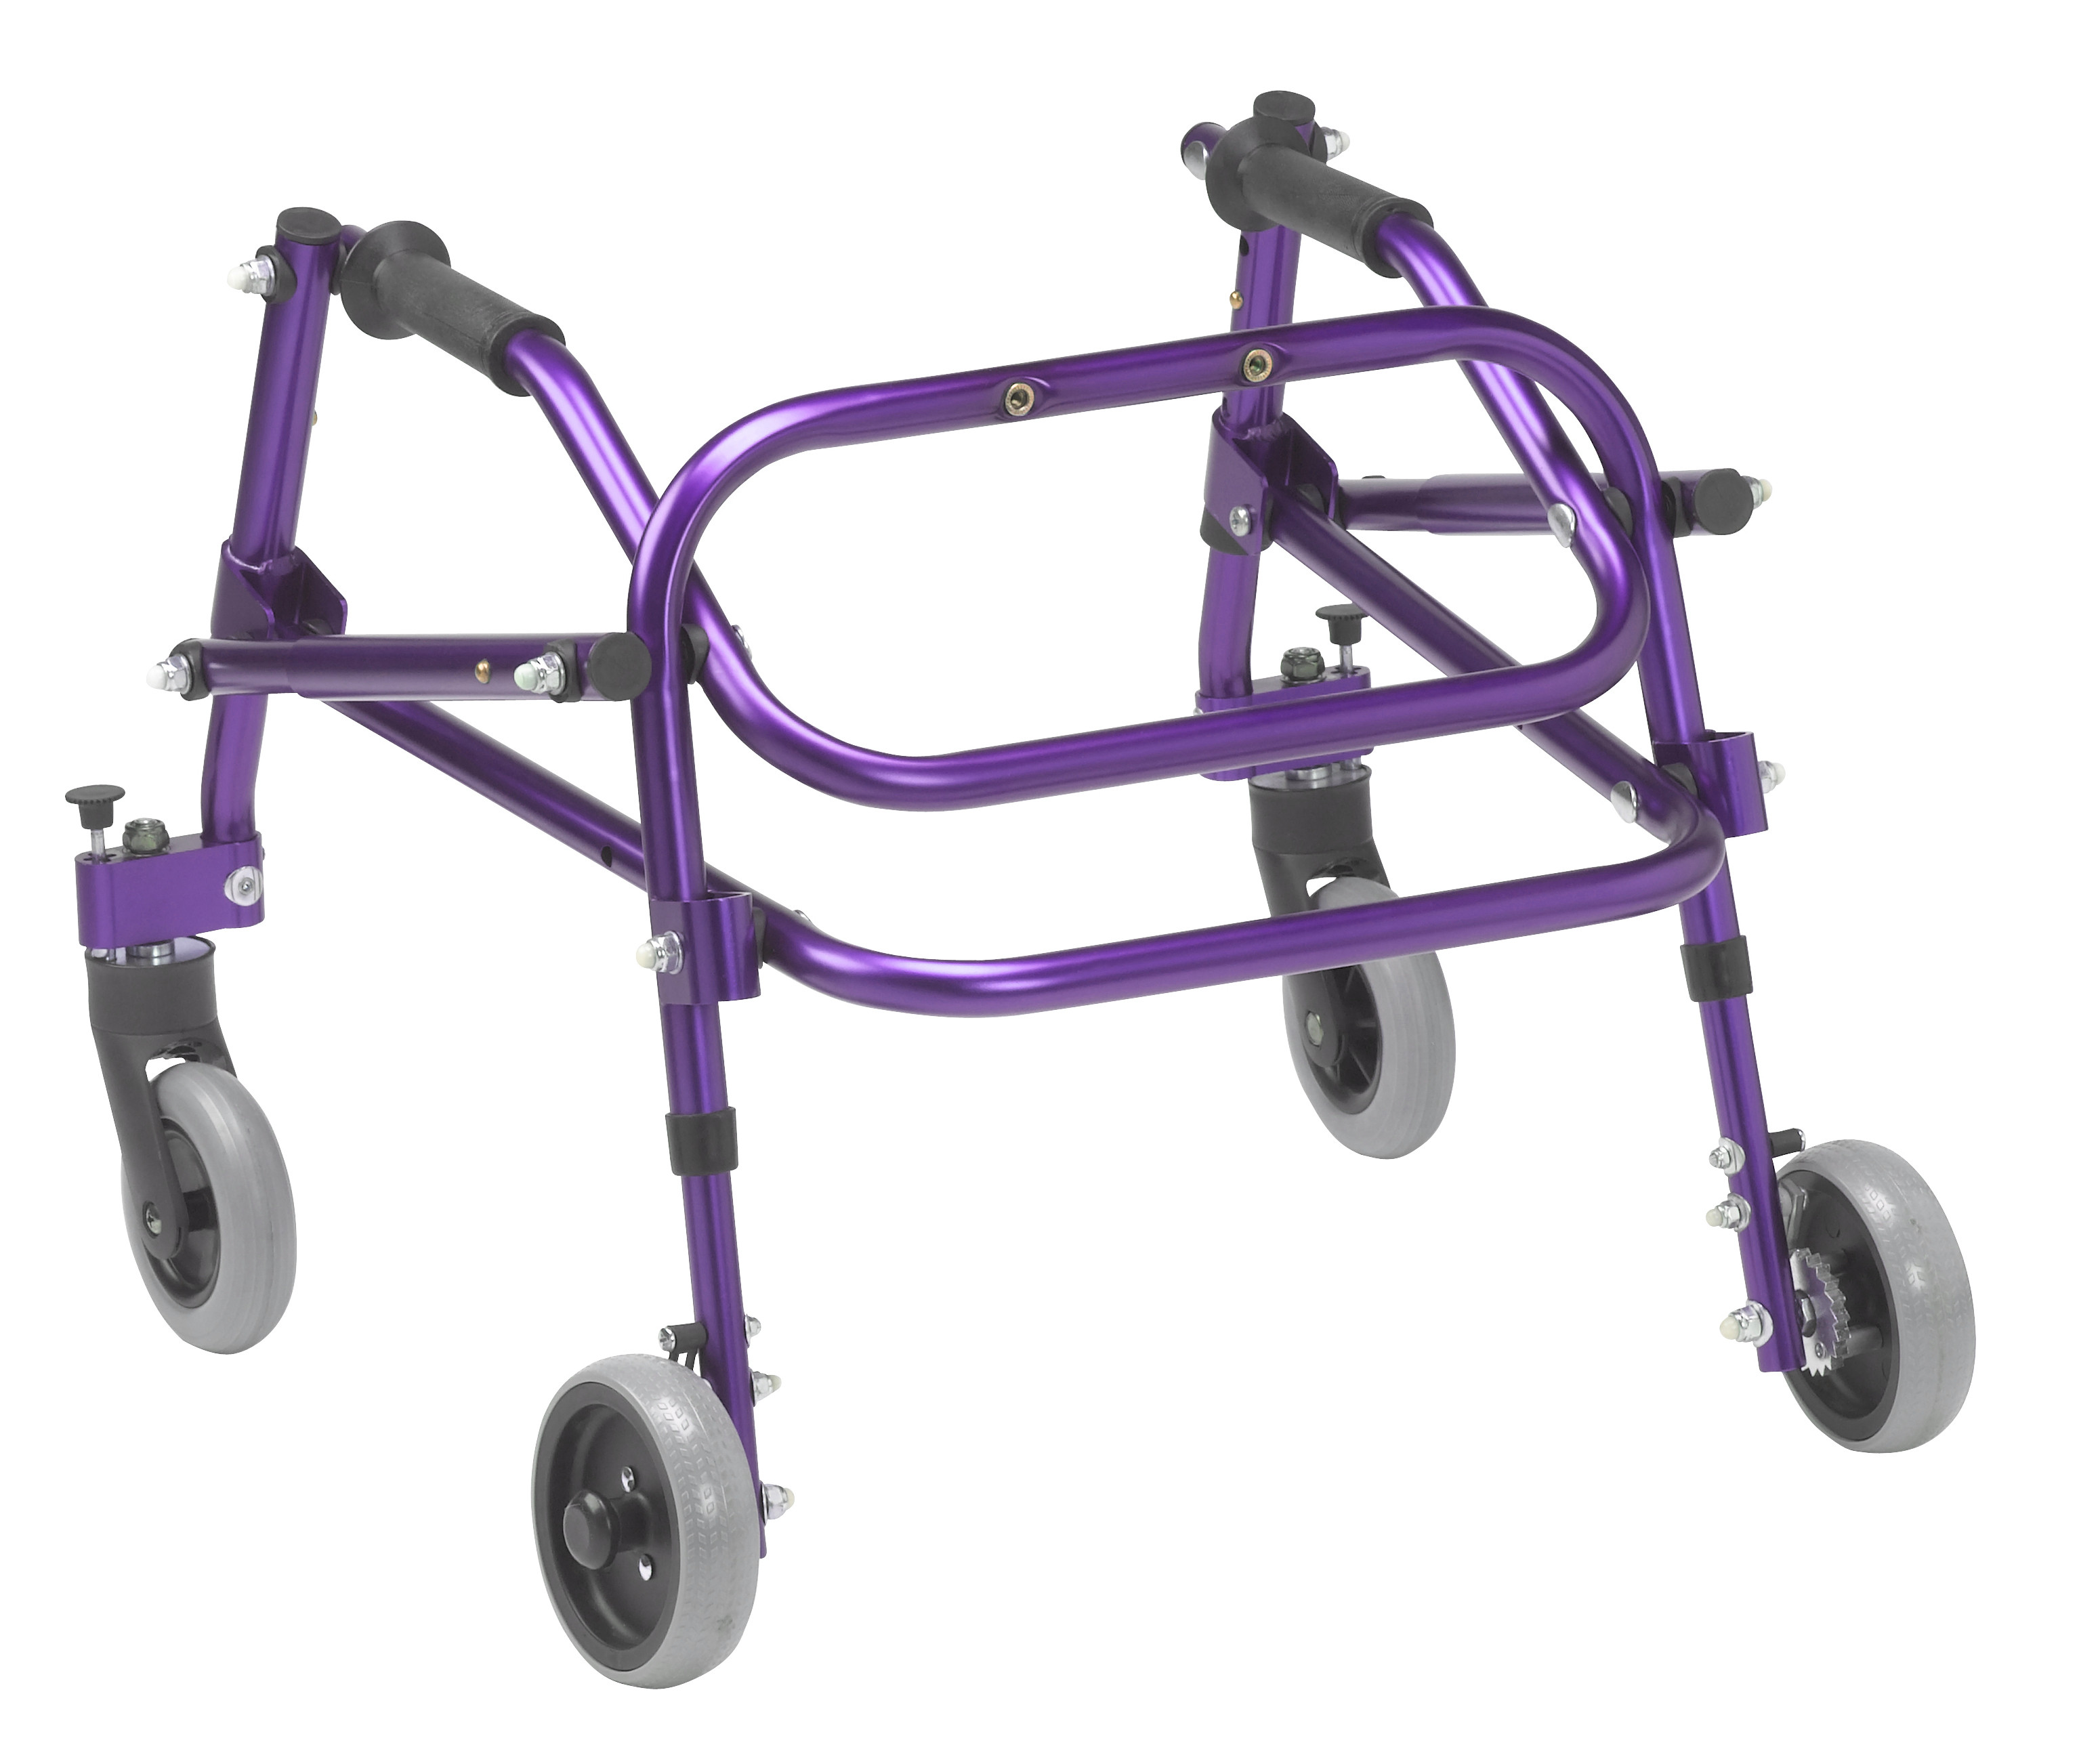 Nimbo 2G Lightweight Posterior Walker - Medium - Wizard Purple - Angle View